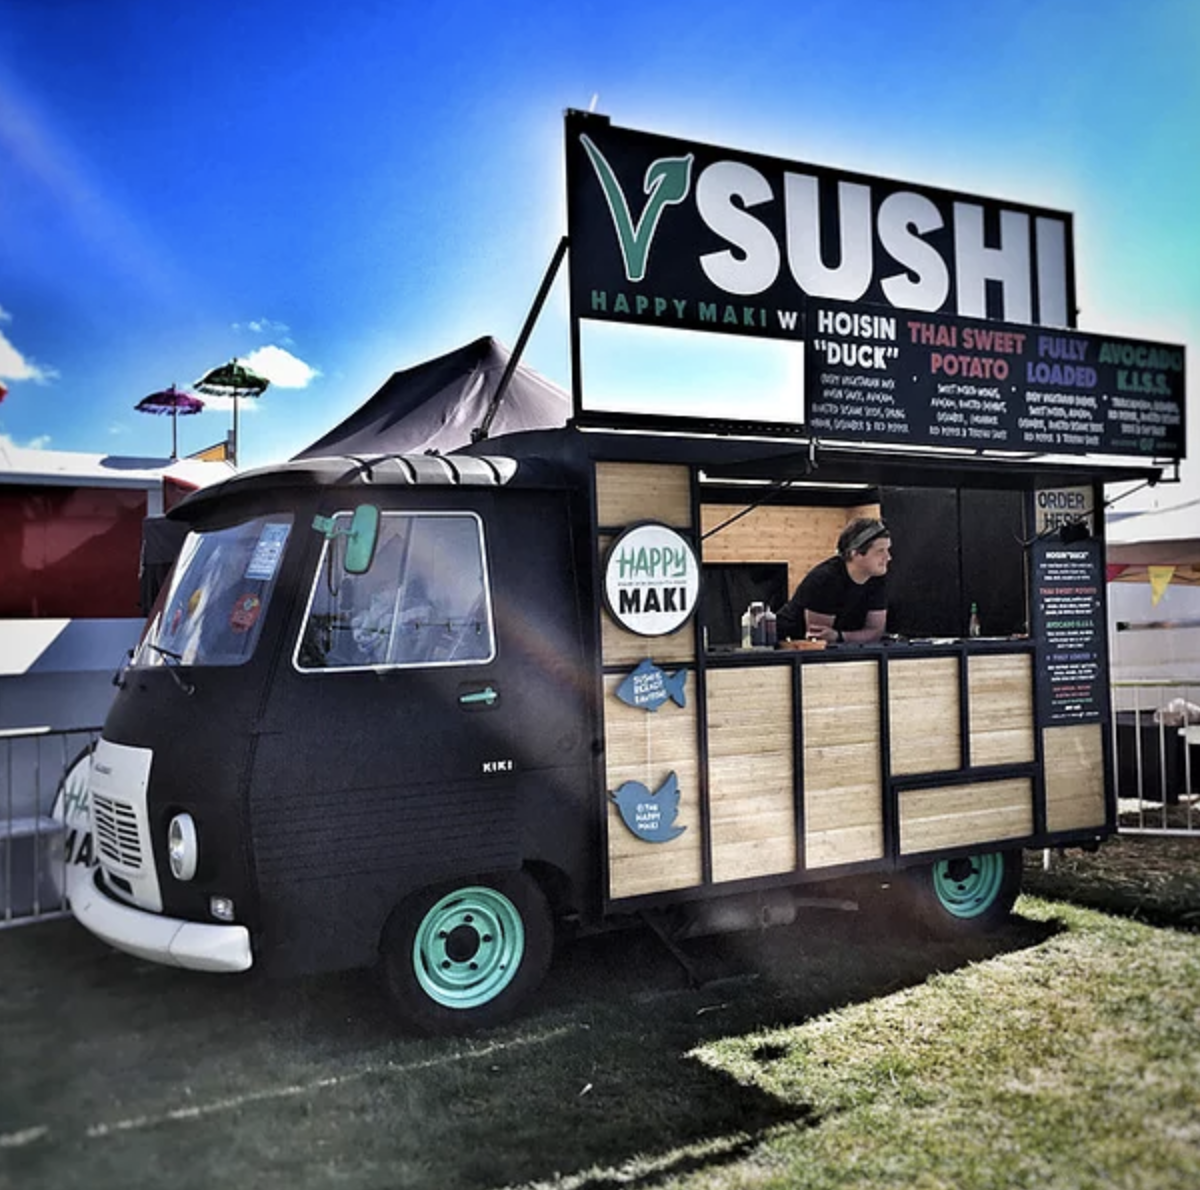 The Best Vegan Food Trucks And Stalls From Around The Uk